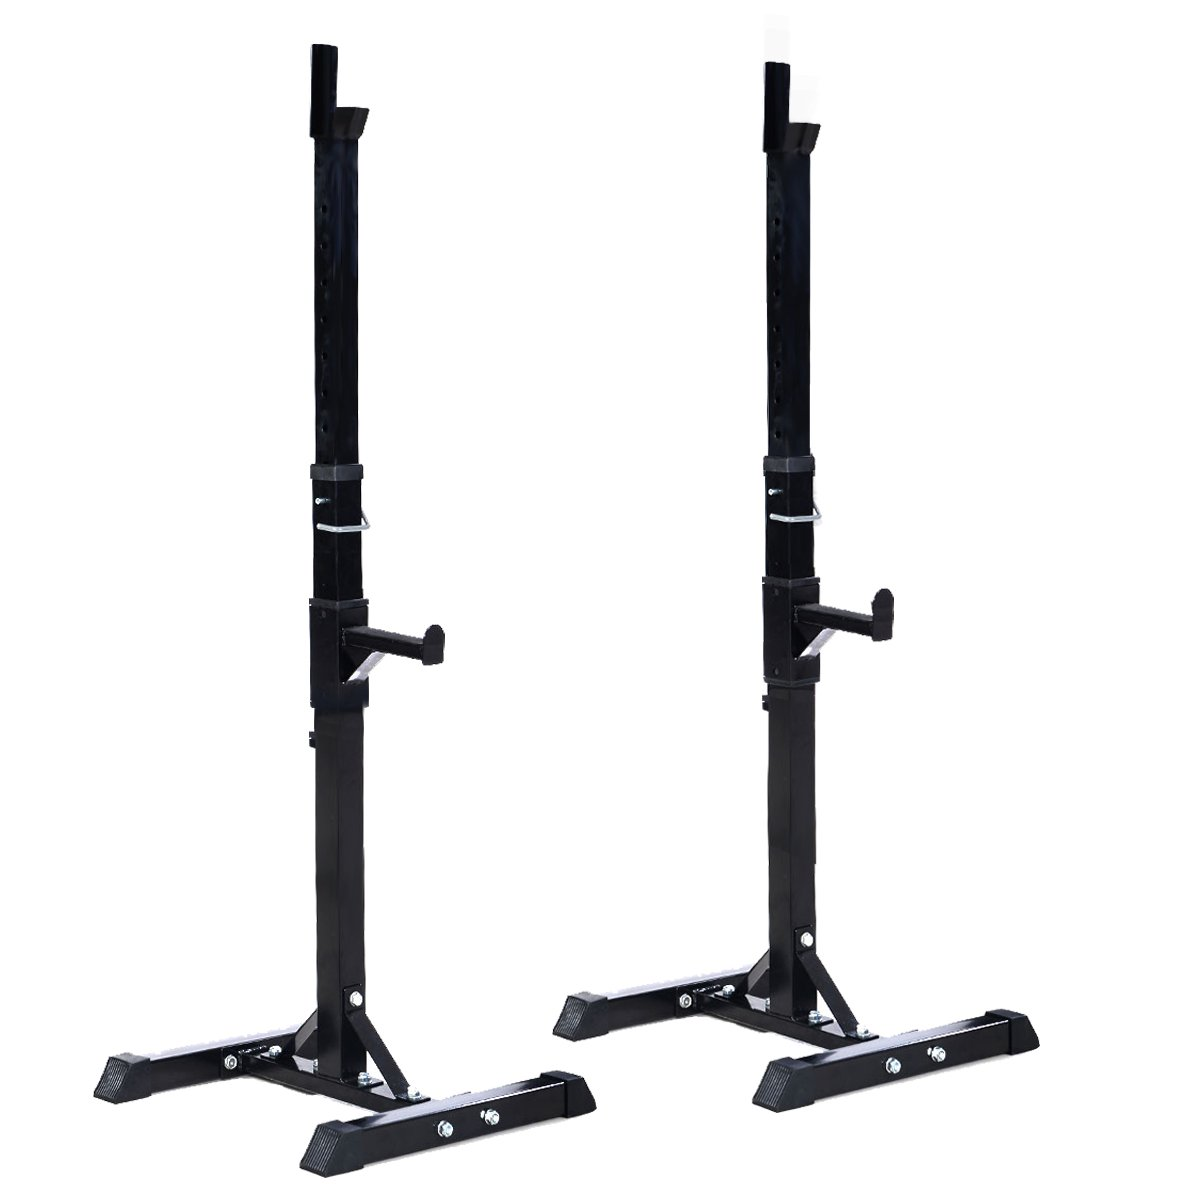 Goplus Pair of Adjustable Standard Squat Stands Solid Steel Barbell Dumbbell Power Rack Home Gym